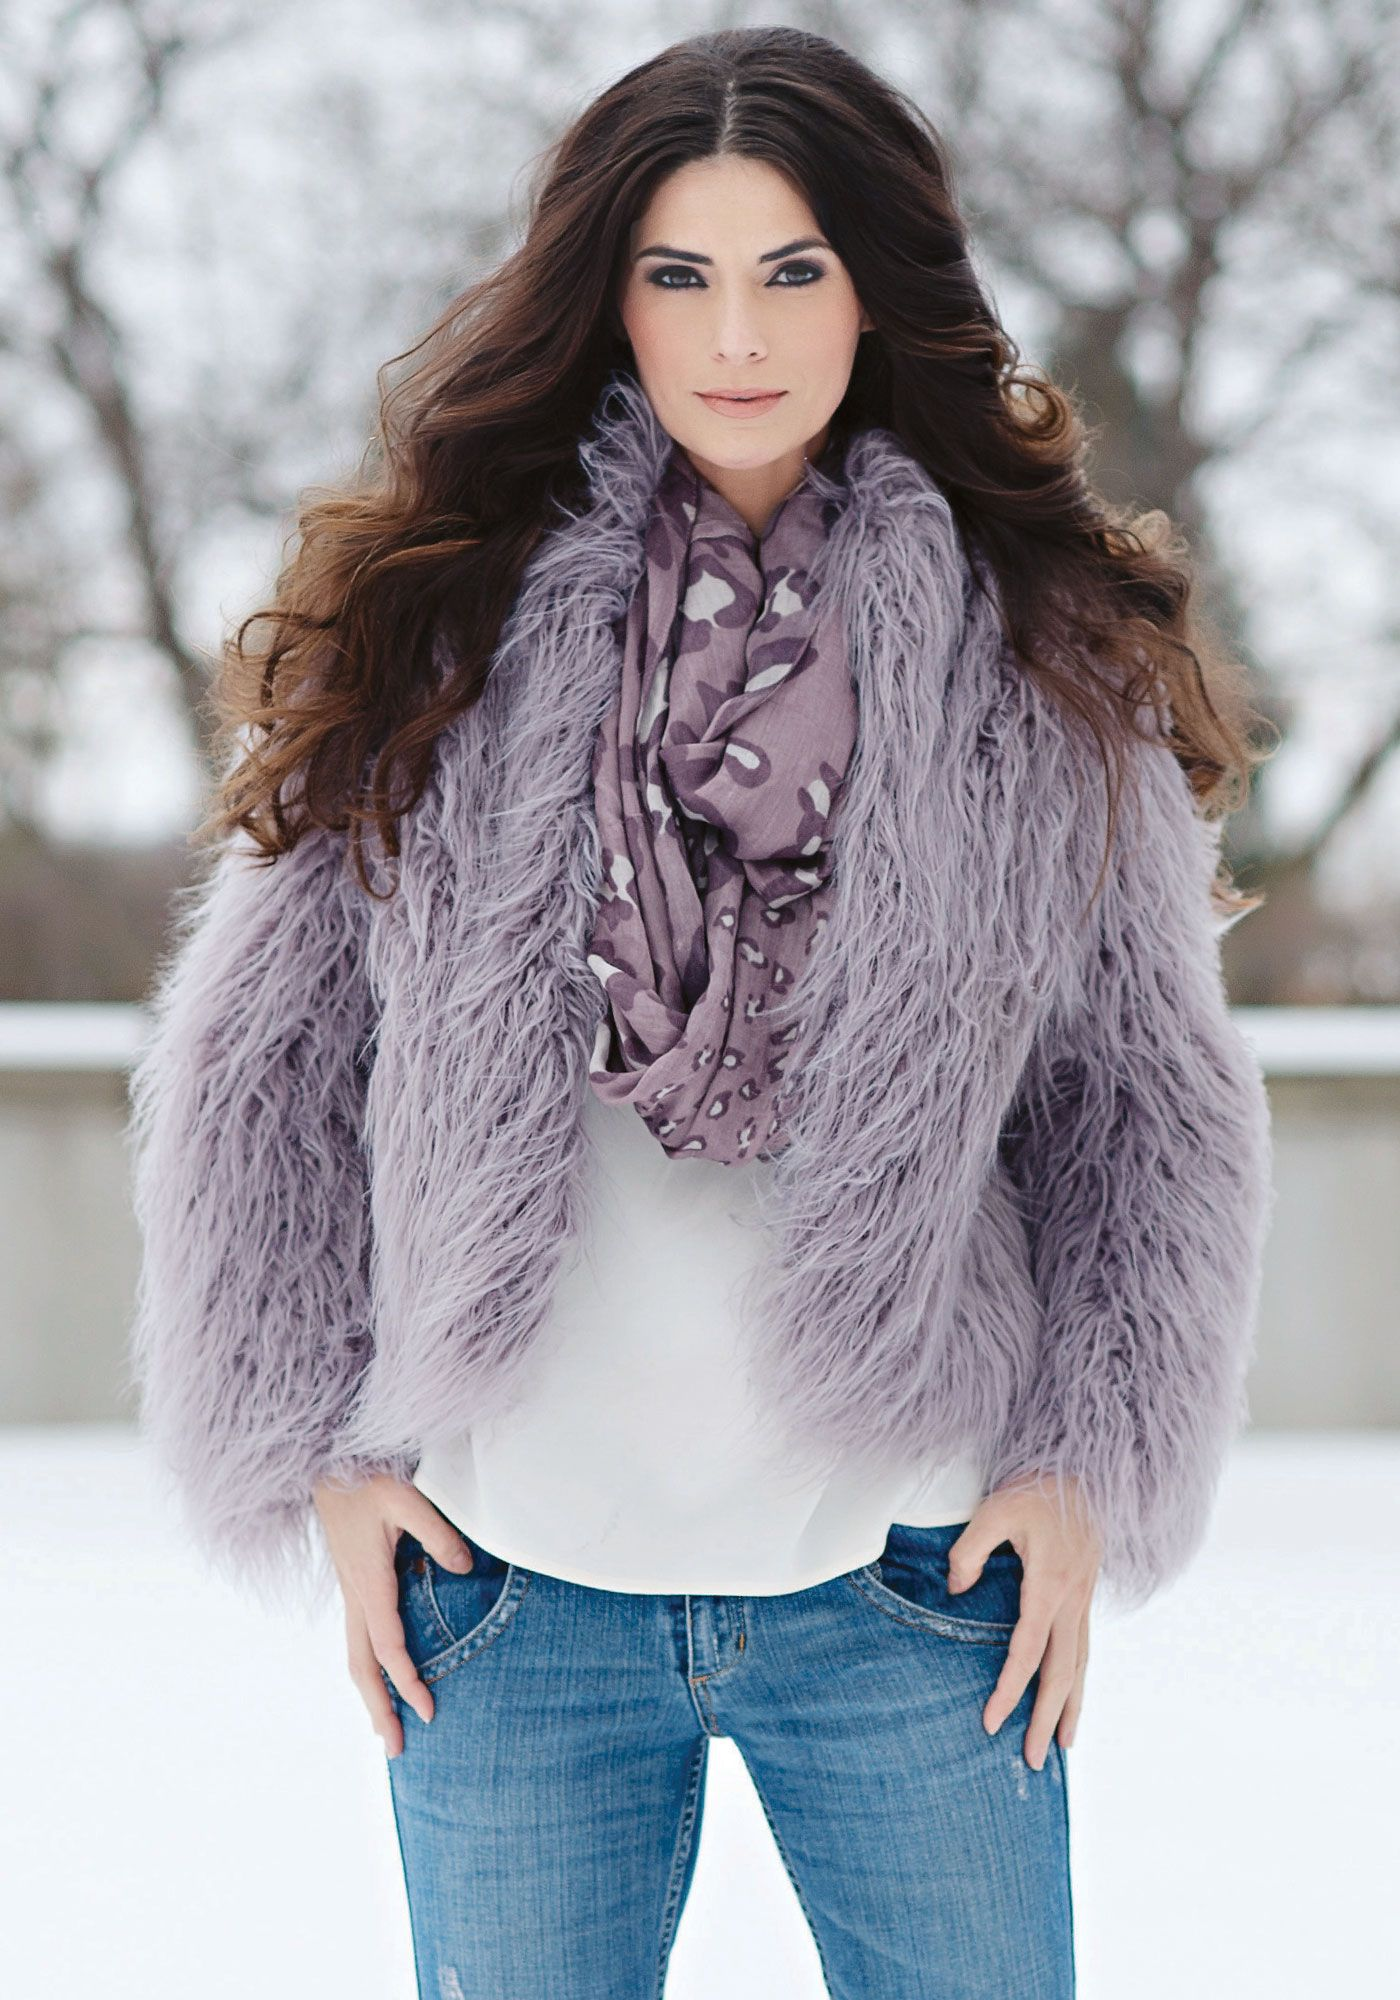 Coyote Hooded Faux Fur Jacket | Coats, Models and Lavender